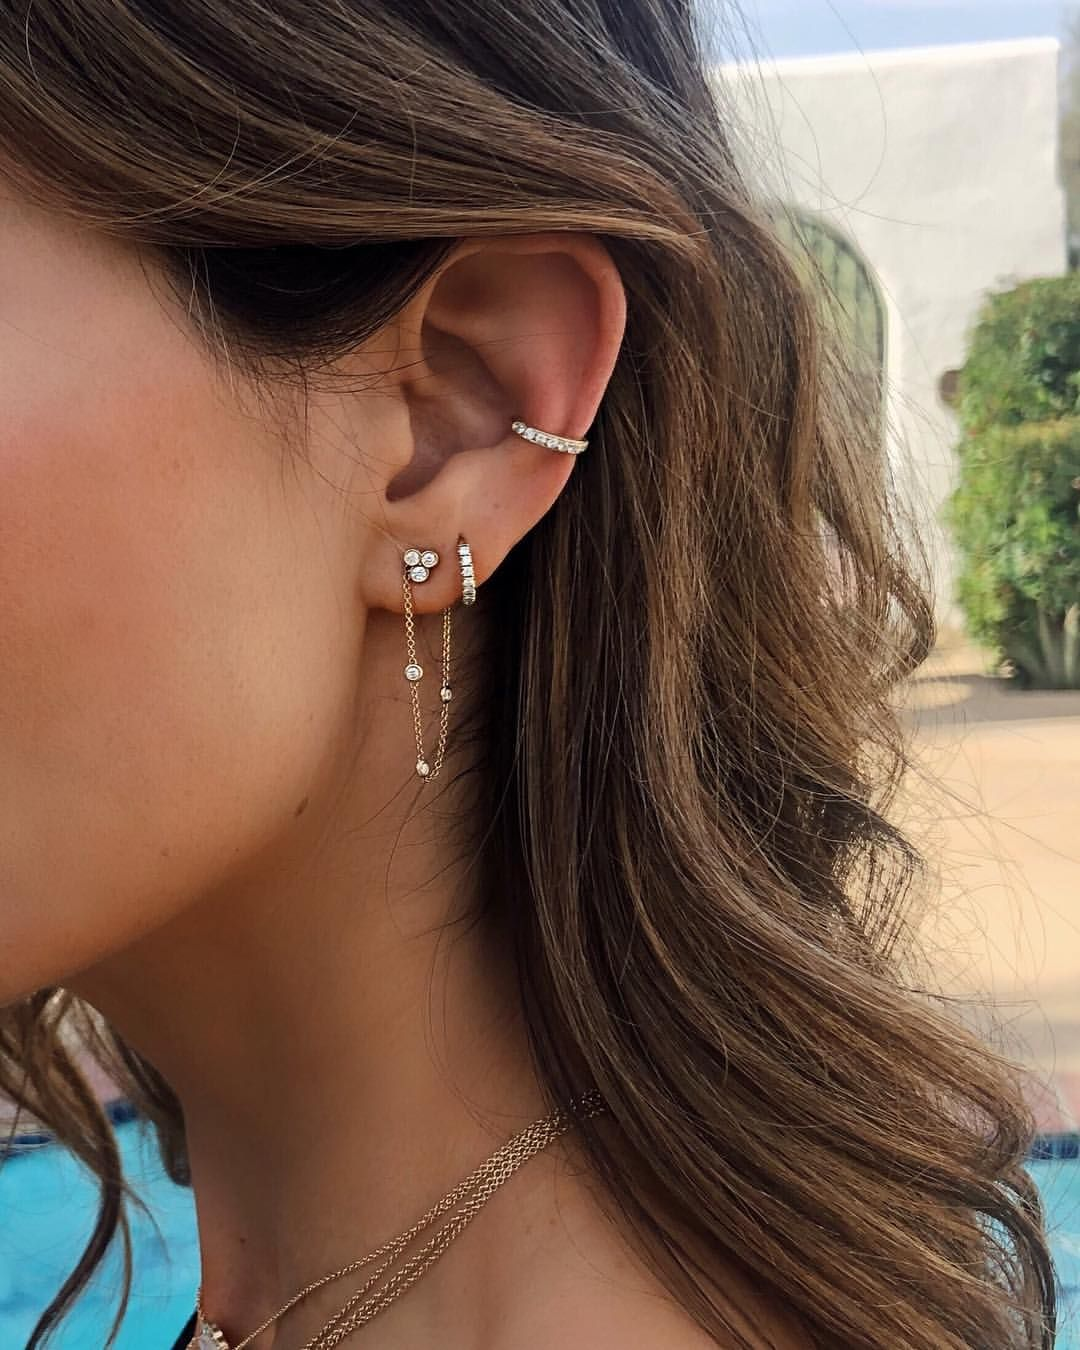 90s nose piercing  Take it up a notch  New star shower chain earring for single